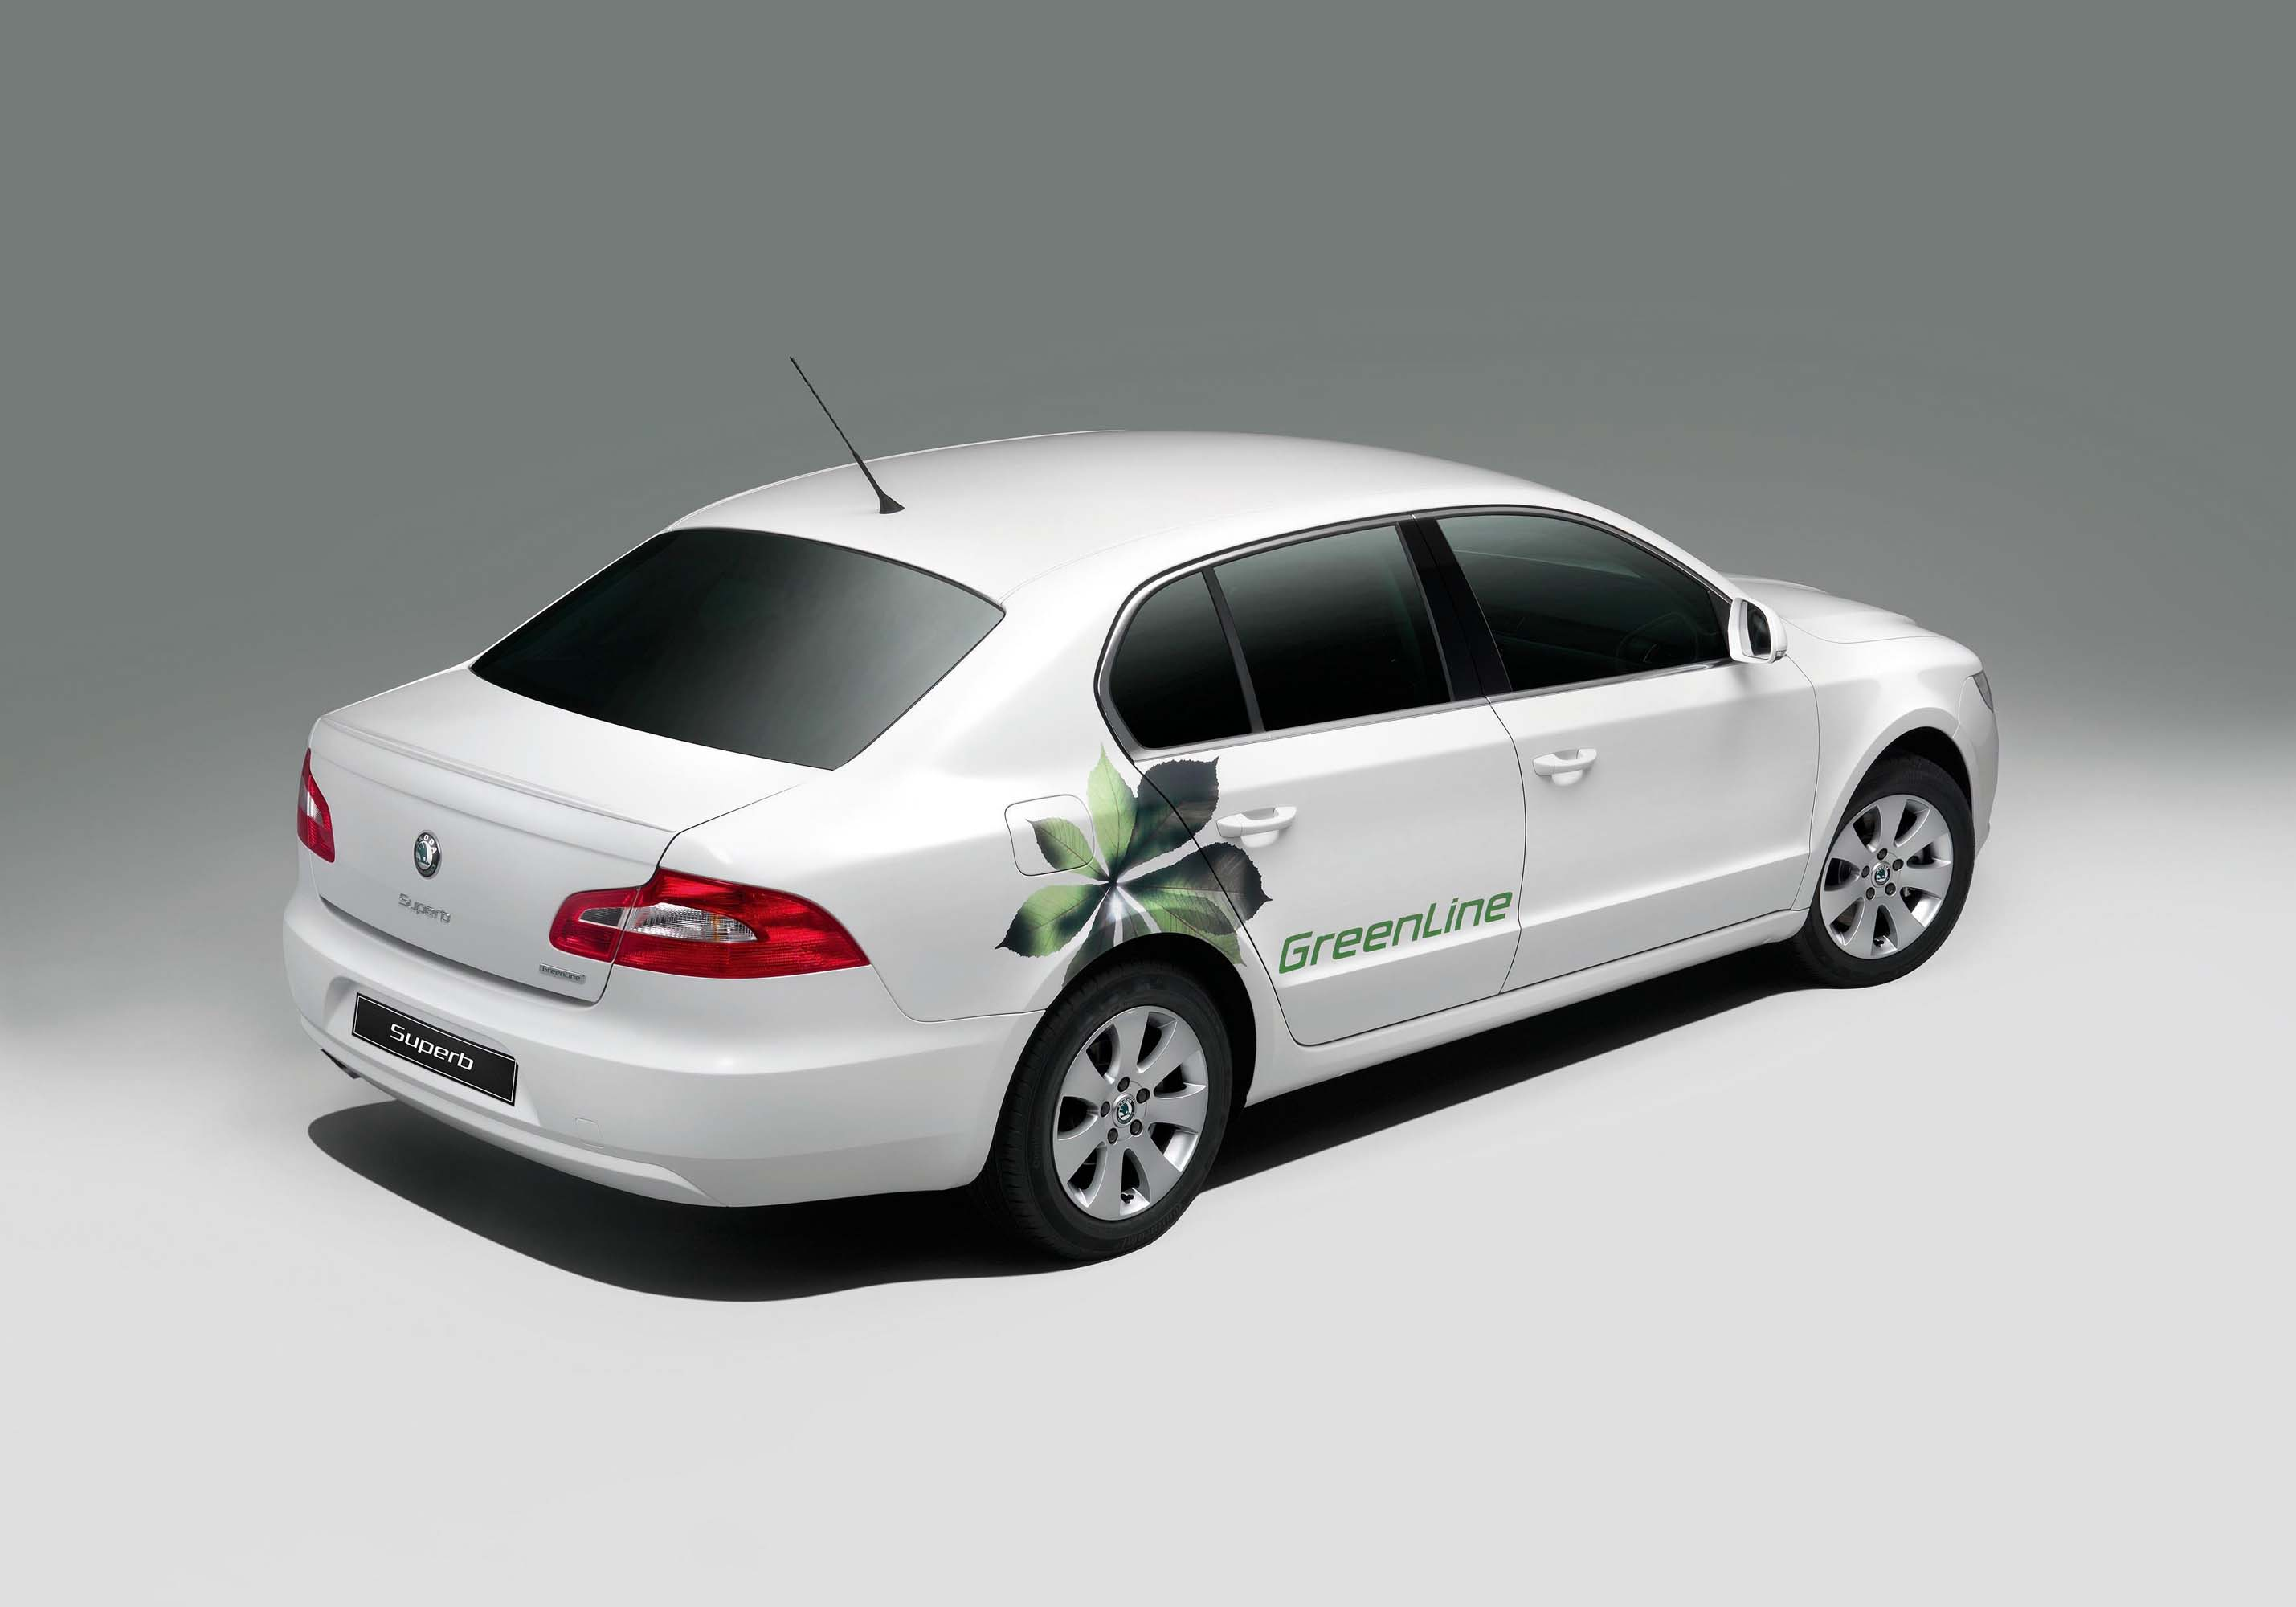 Skoda Greenline photo 10